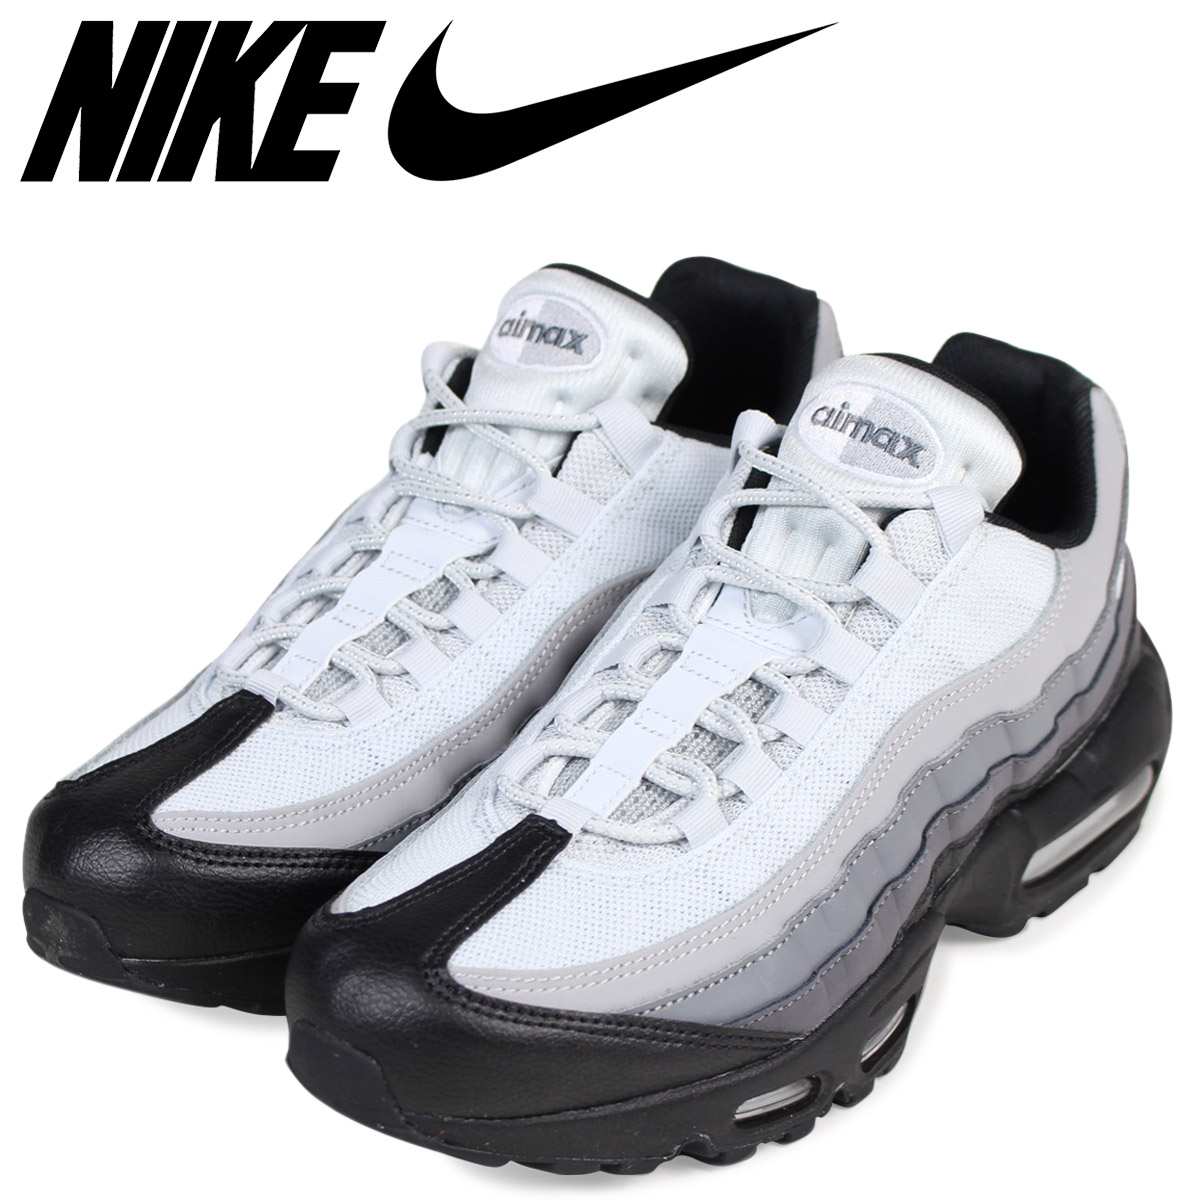 466a16ca0a1a5b Sugar Online Shop  NIKE Kie Ney AMAX 95 essential sneakers AIR MAX ...